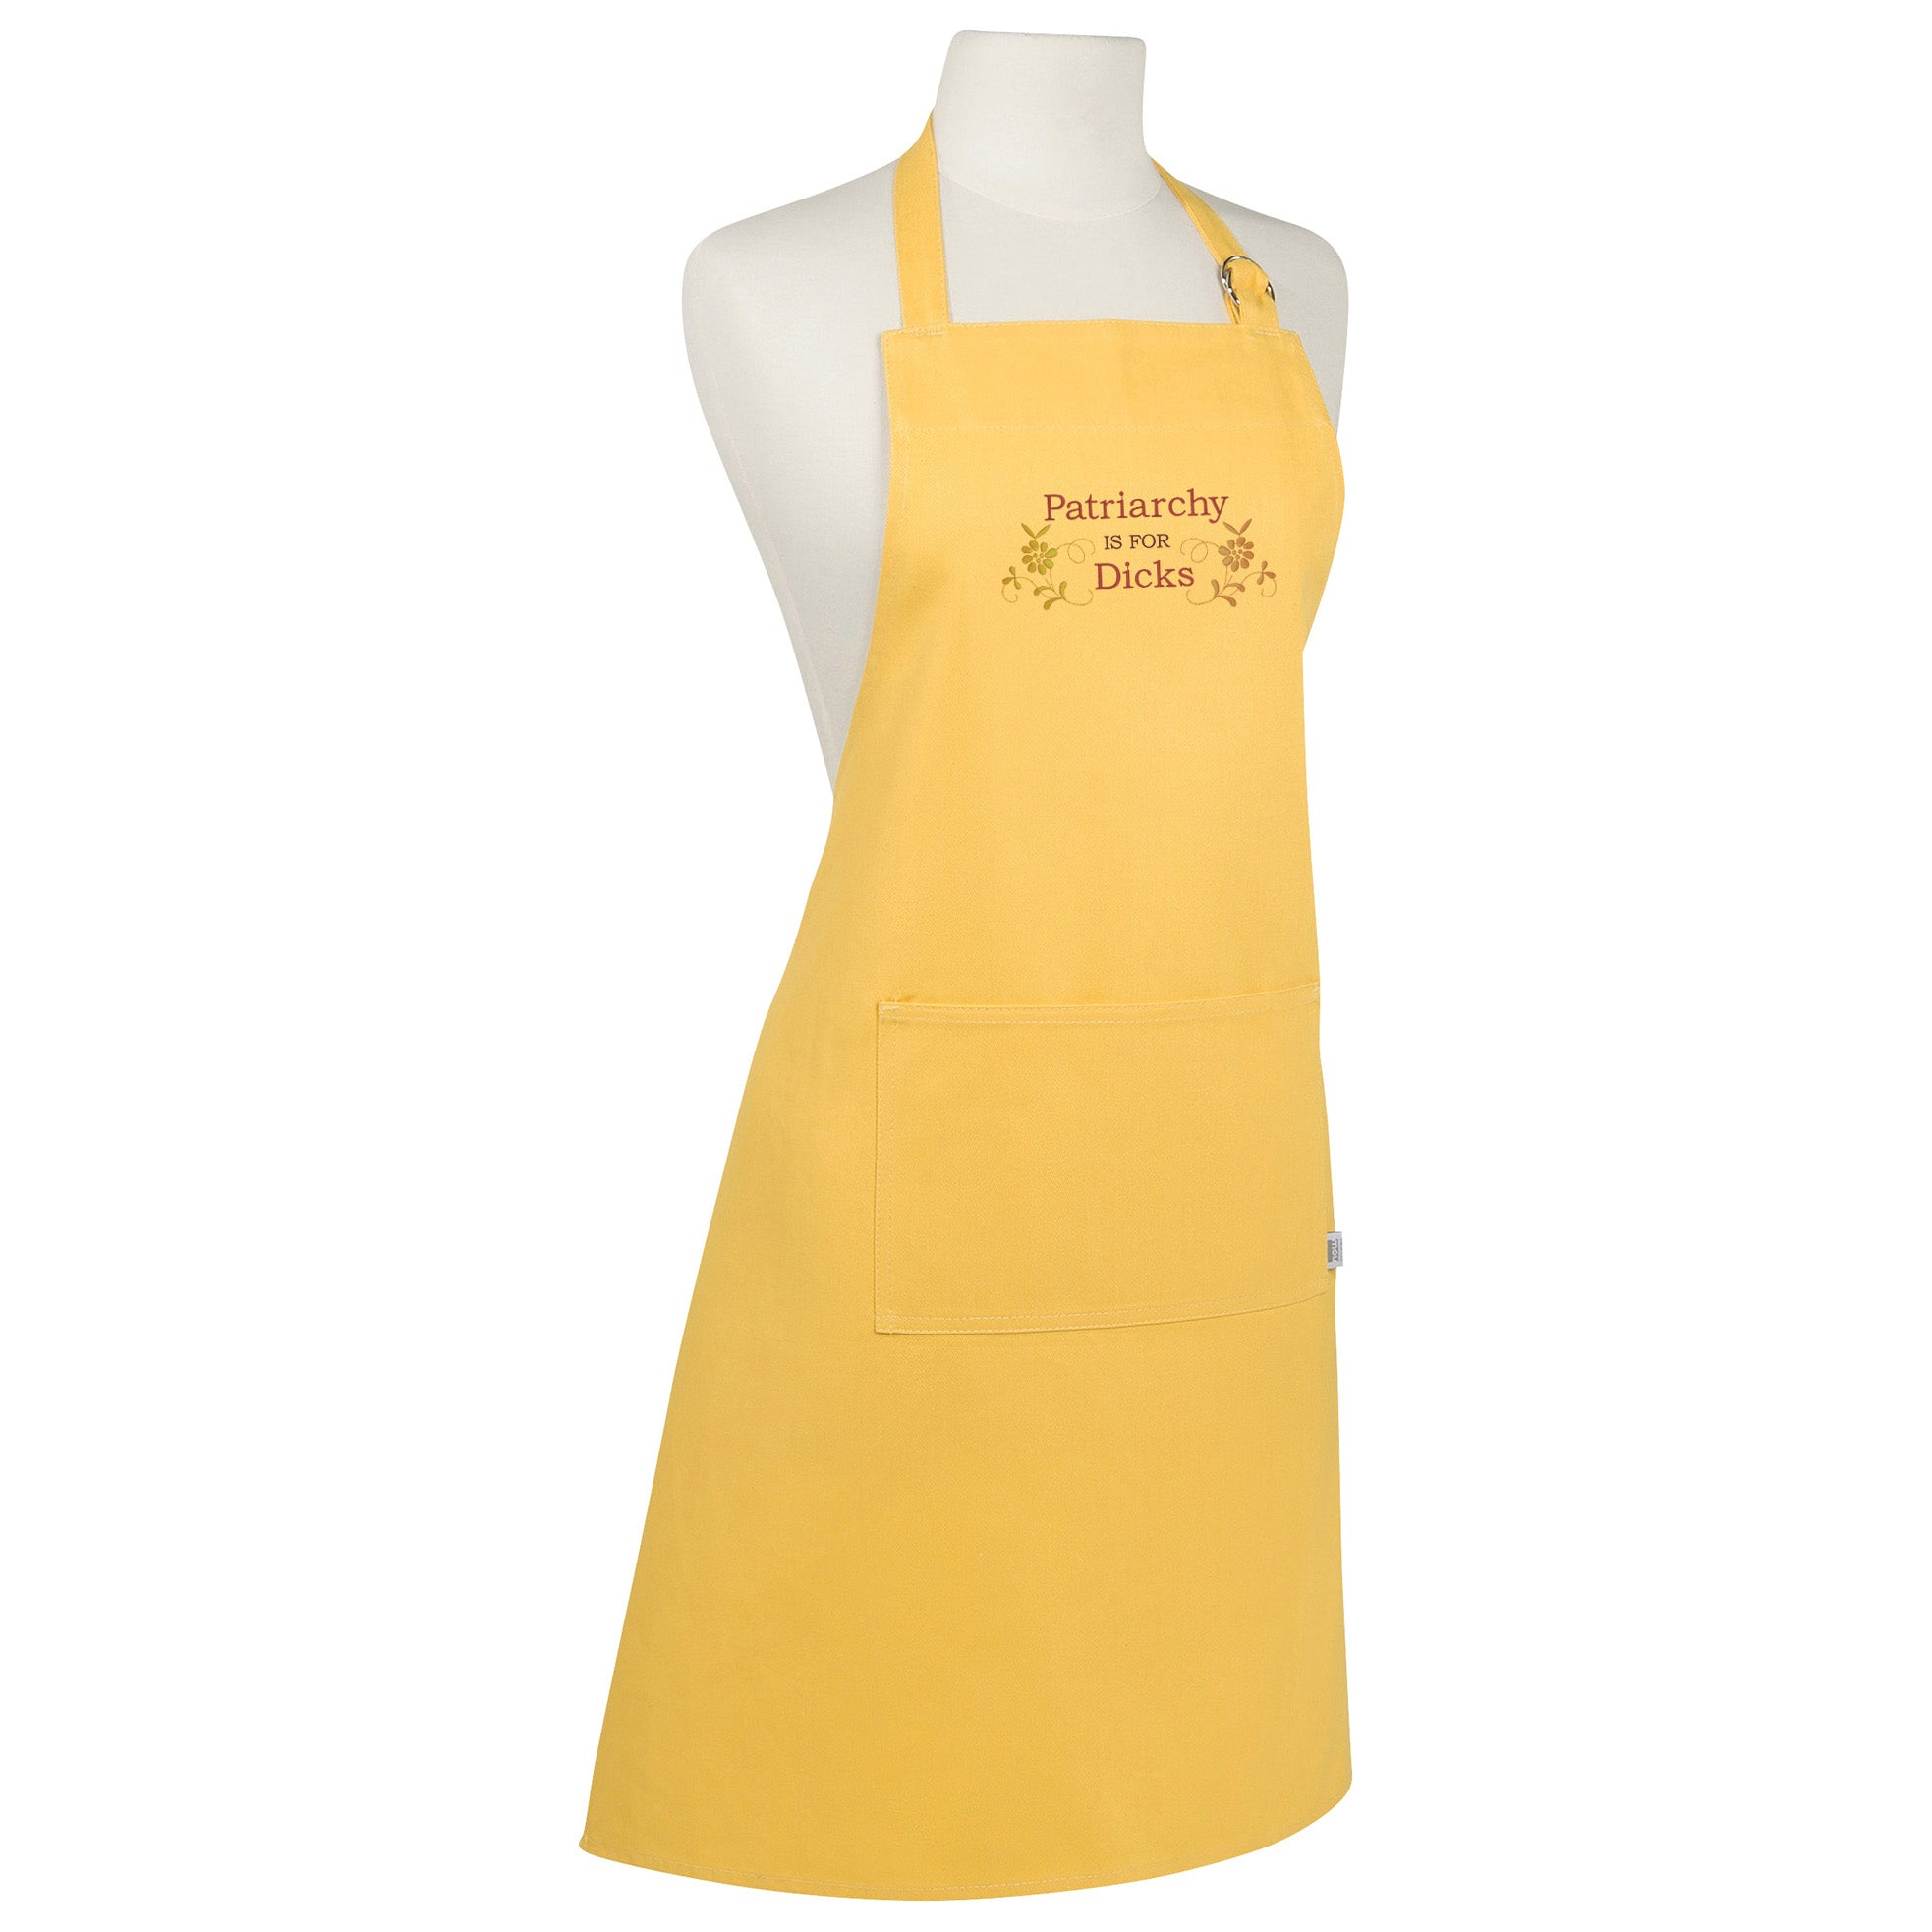 Patriarchy is for Dicks Make Original Yellow Apron